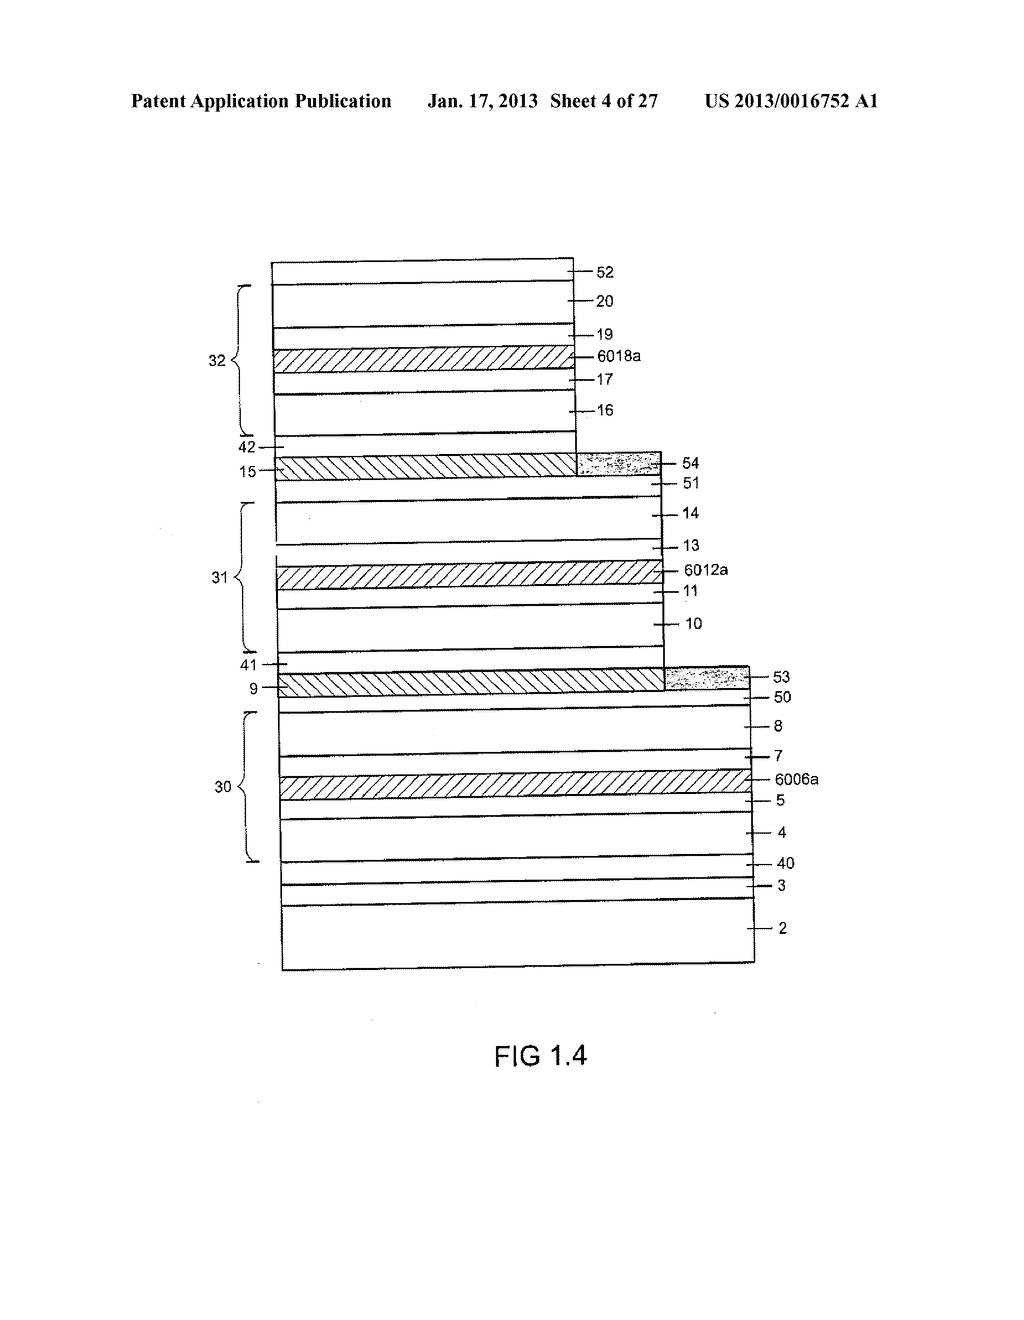 Laser Diode Assembly and Method for Producing a Laser Diode AssemblyAANM Lell; AlfredAACI Maxhutte-HaidhofAACO DEAAGP Lell; Alfred Maxhutte-Haidhof DEAANM Straussburg; MartinAACI DonaustaufAACO DEAAGP Straussburg; Martin Donaustauf DE - diagram, schematic, and image 05